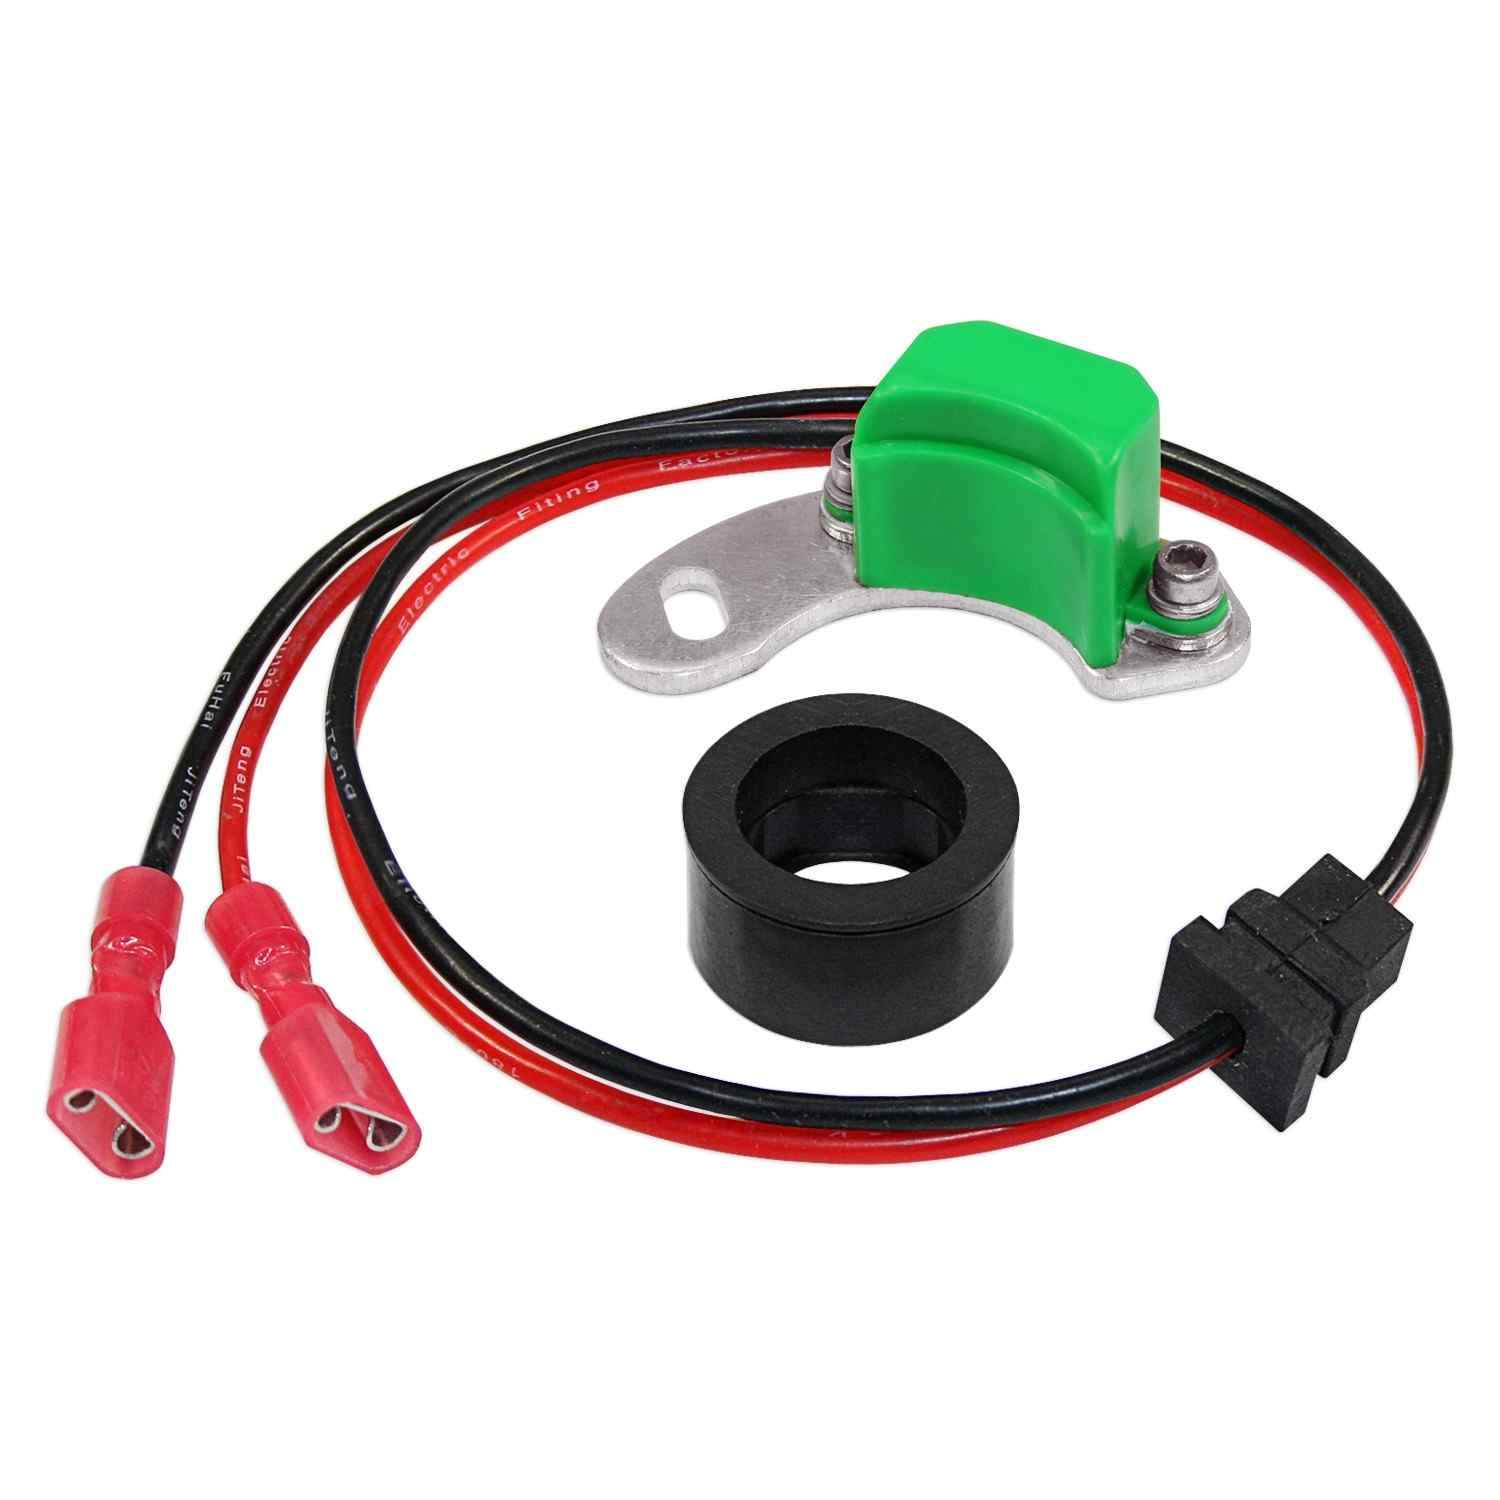 Electronic Ignition Control Module for Kuhltek 009 - 050 Distributors